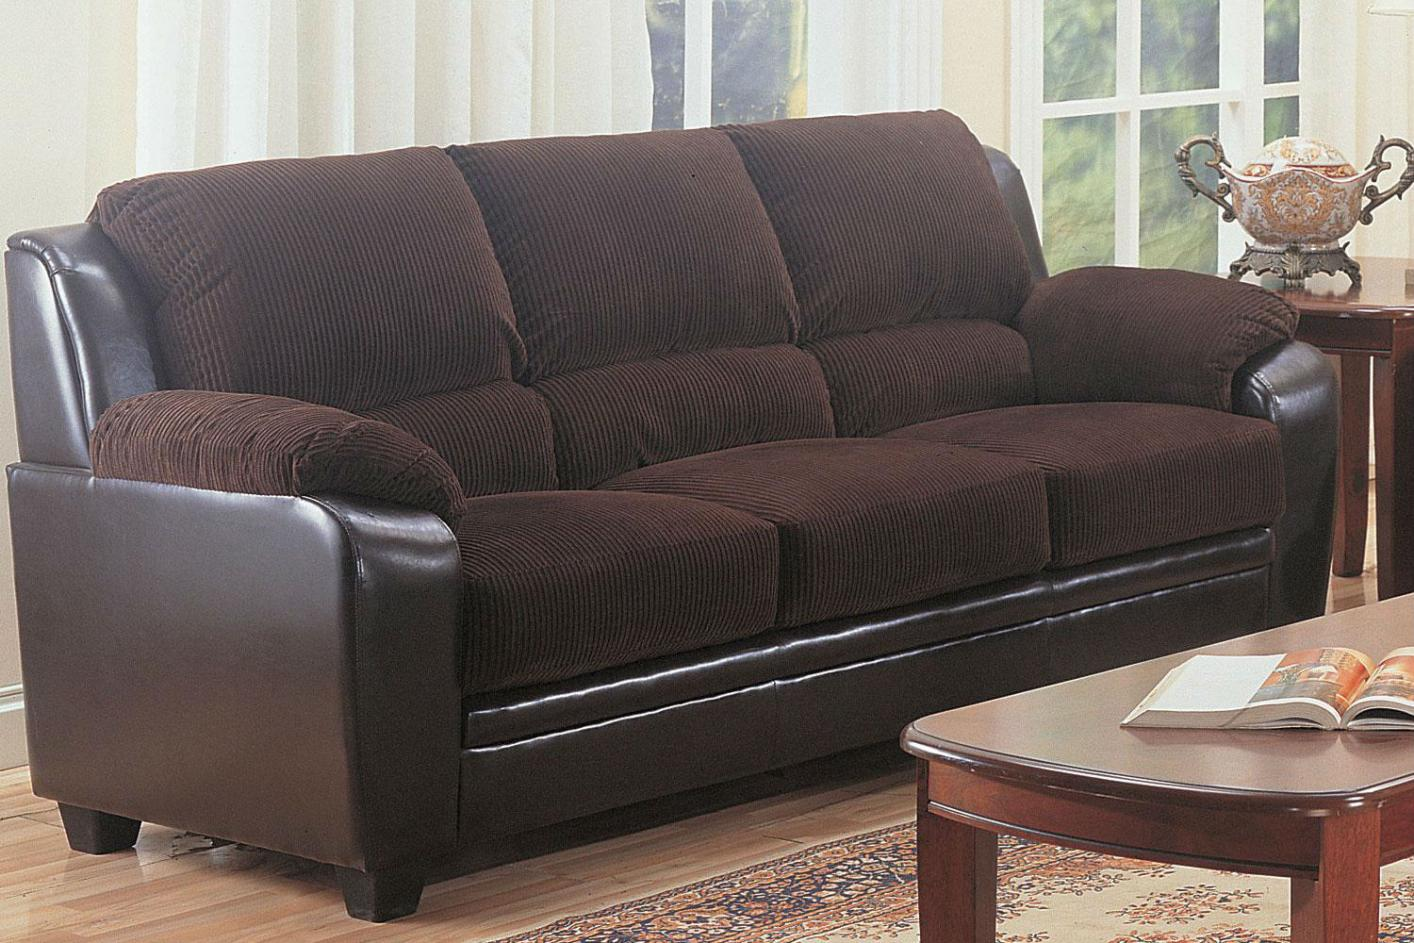 Brown Leather Sofa - Steal-A-Sofa Furniture Outlet Los Angeles CA